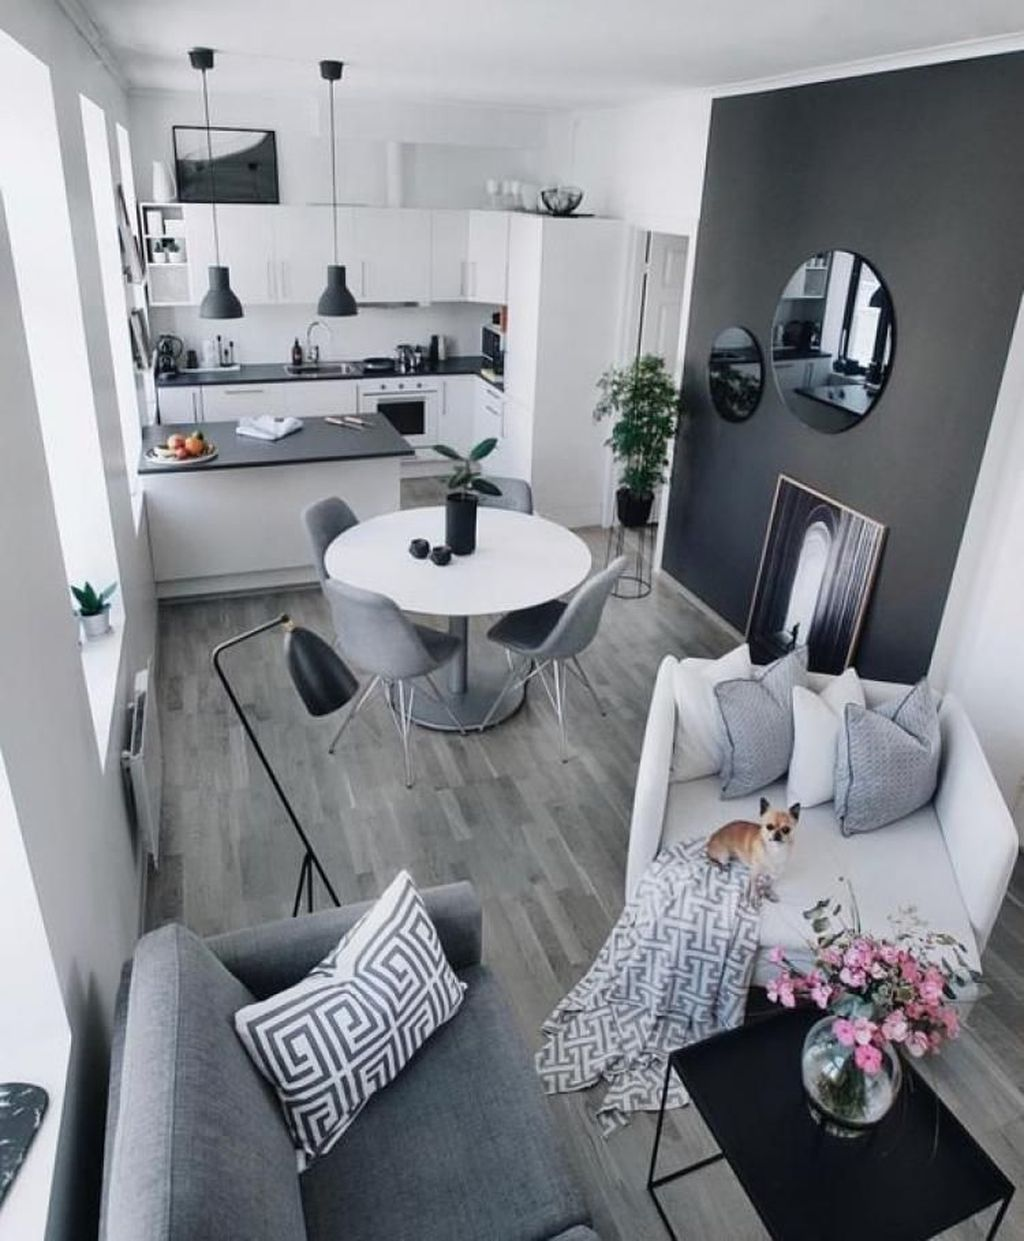 41 Inspiring Small Living Room Ideas images